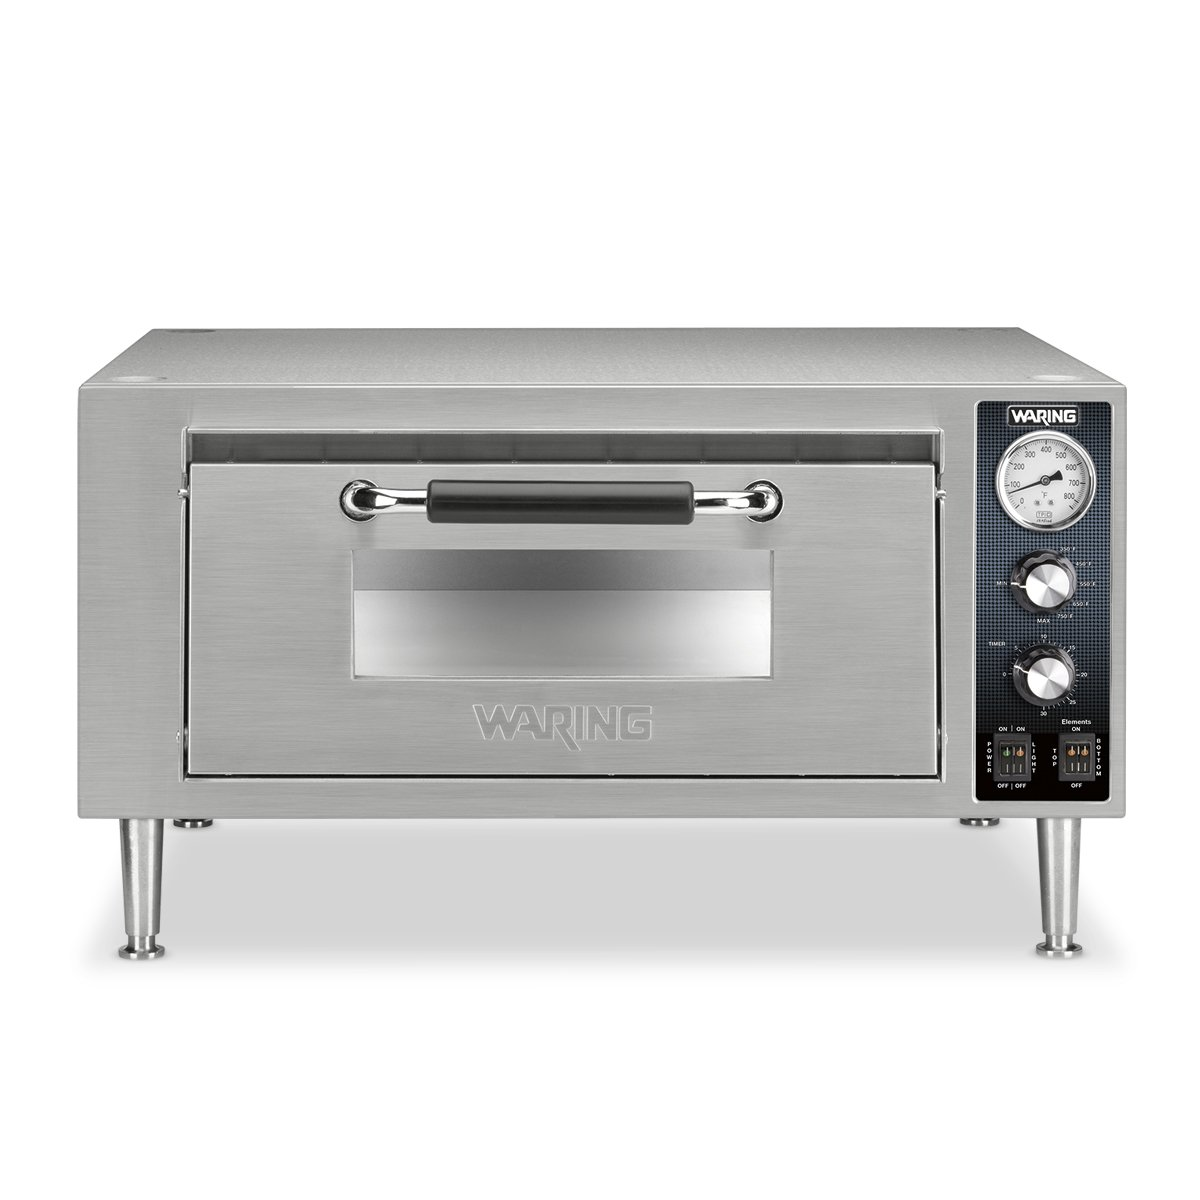 Waring Commercial WPO500 Single Pizza Oven, Silver by Waring